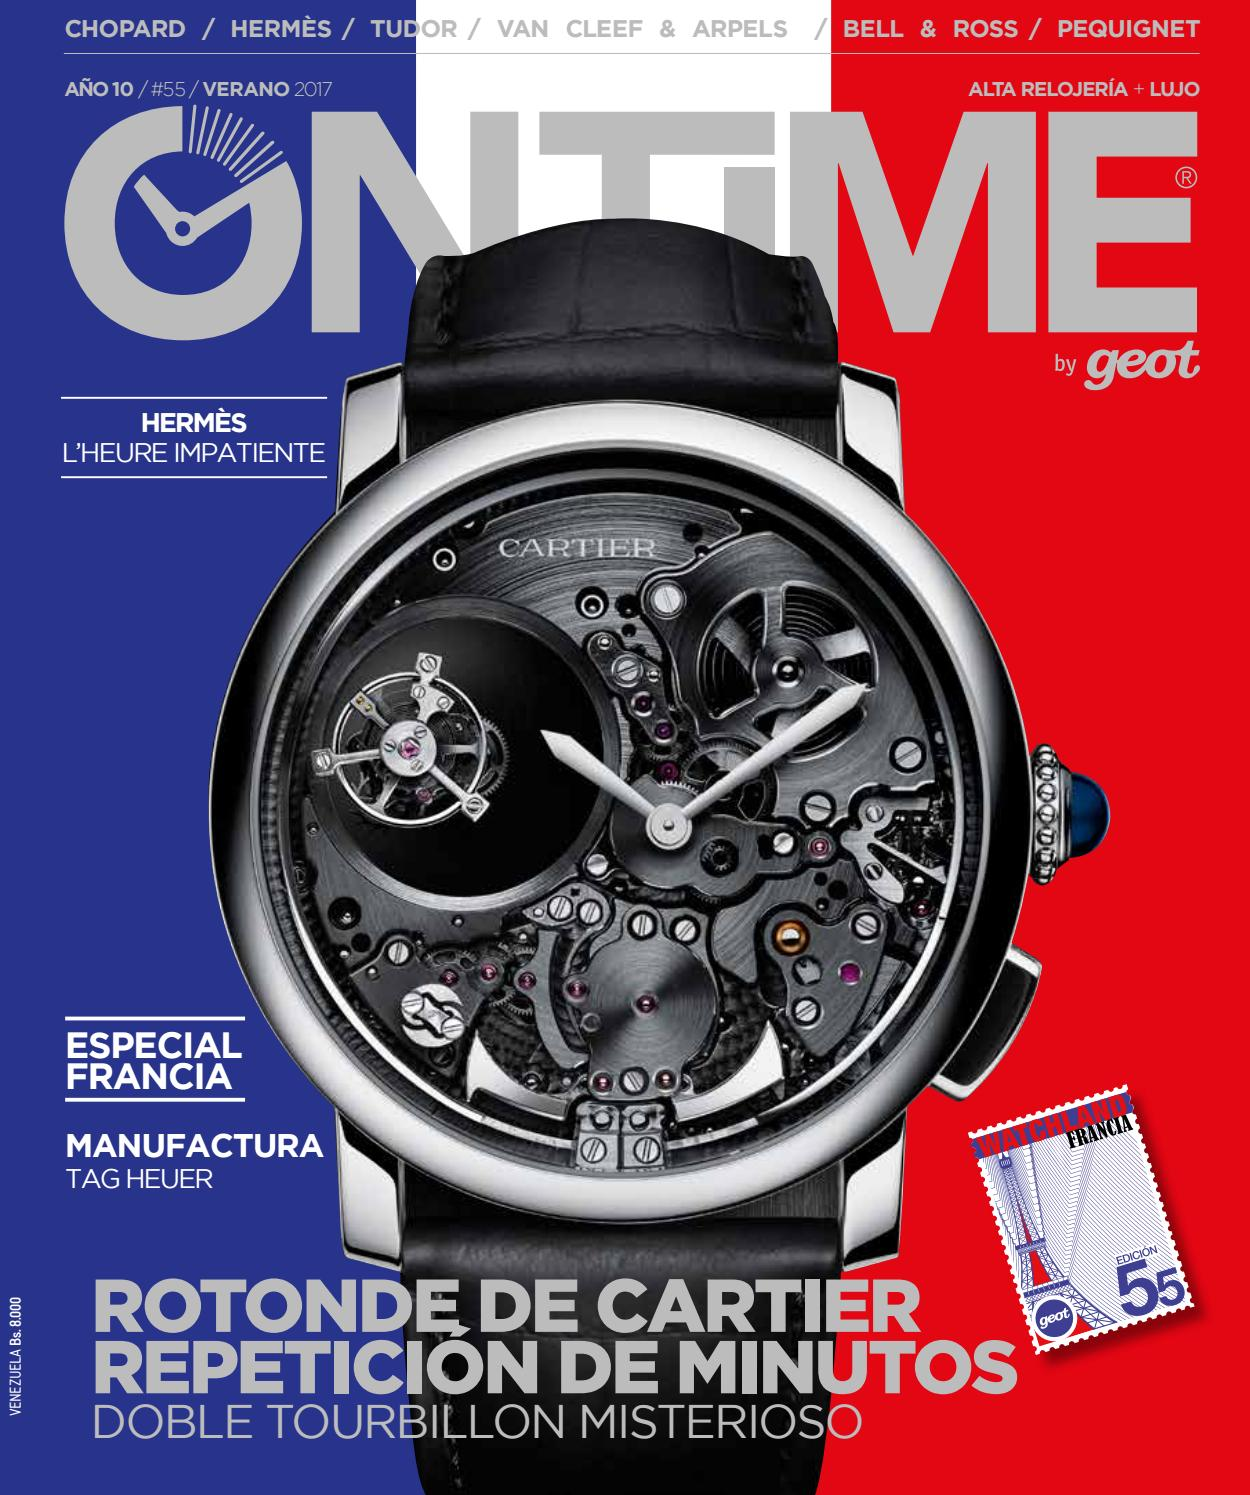 baefeff19e2d On Time VERANO 2017 by Geot  Grupo Editorial On Time  - issuu